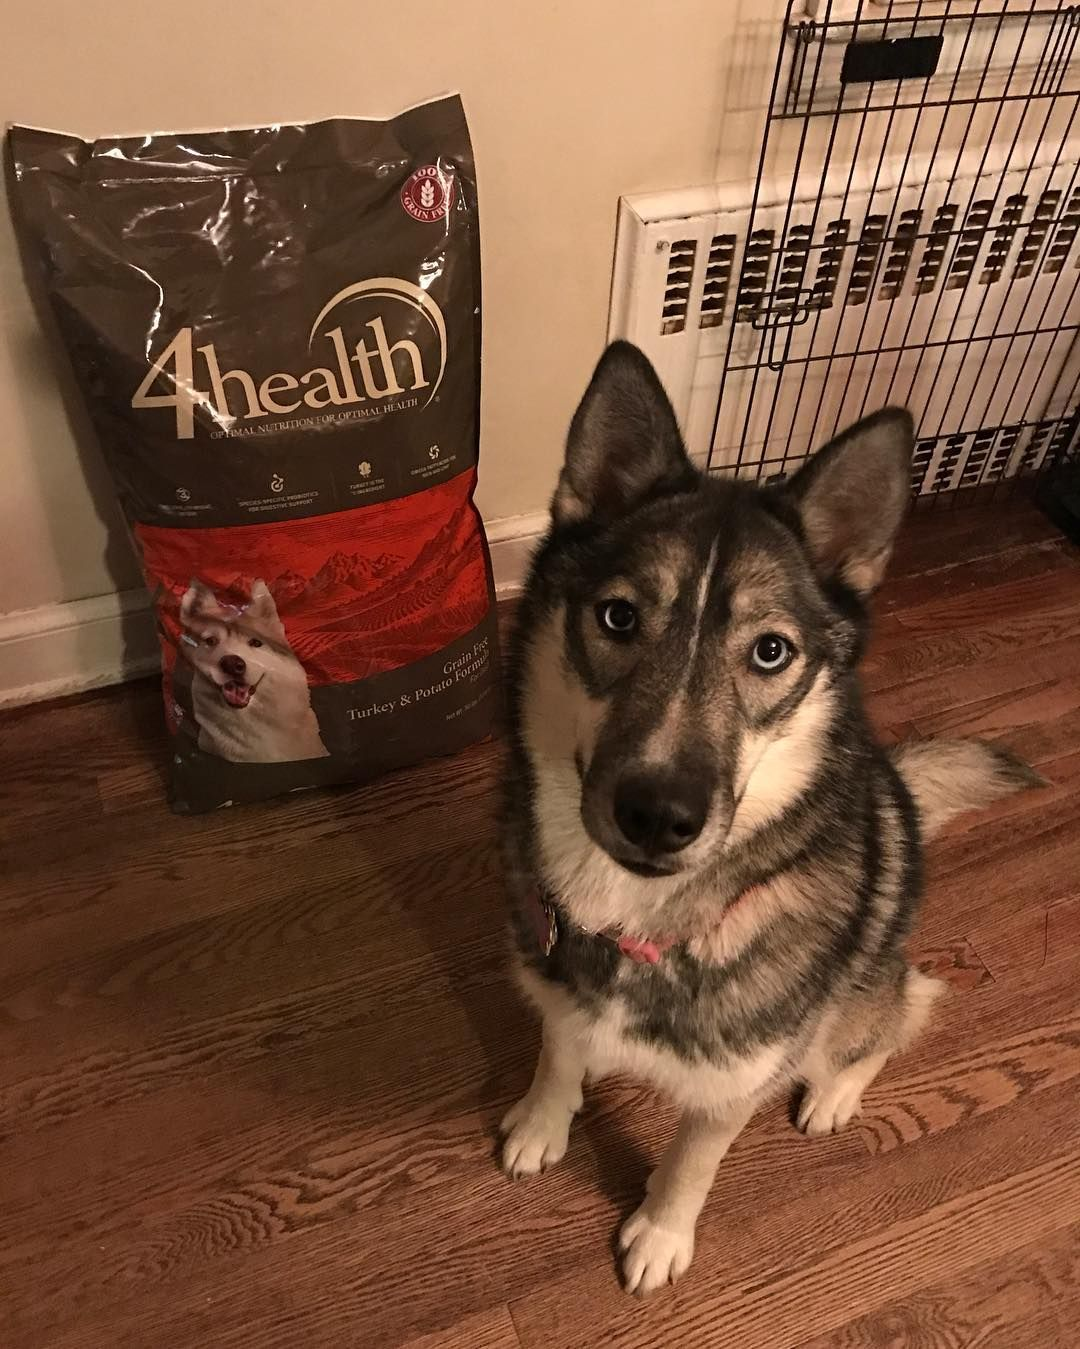 Free Shipping Yes Please Purchase 49 In 4health Dog Kibble Or